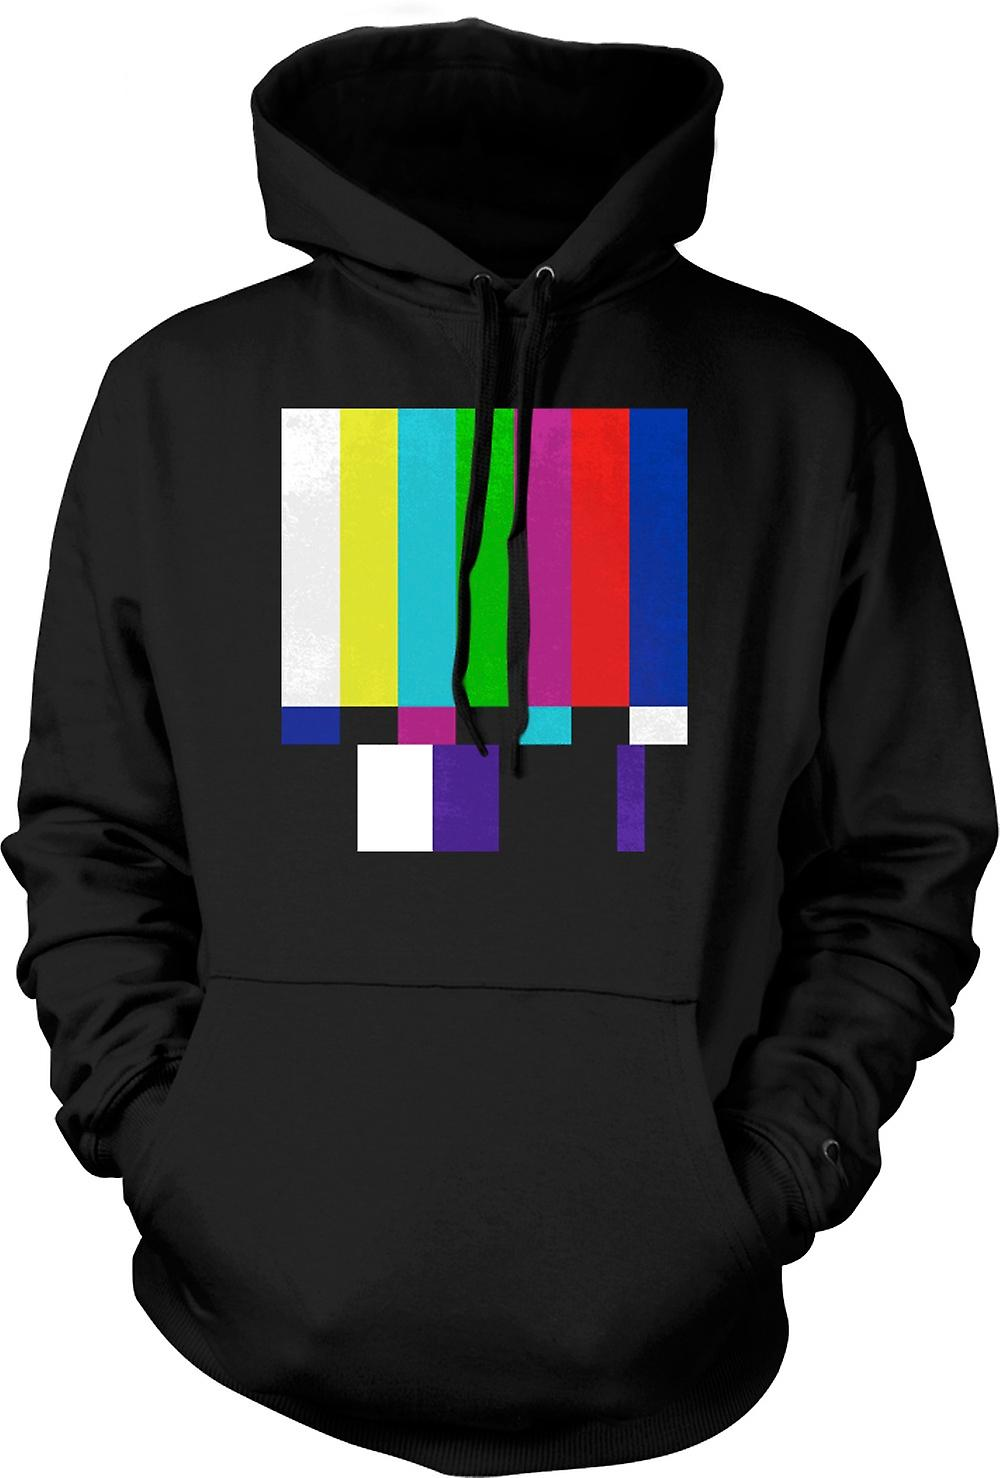 Mens Hoodie - TV Technical Screen 80s Retro